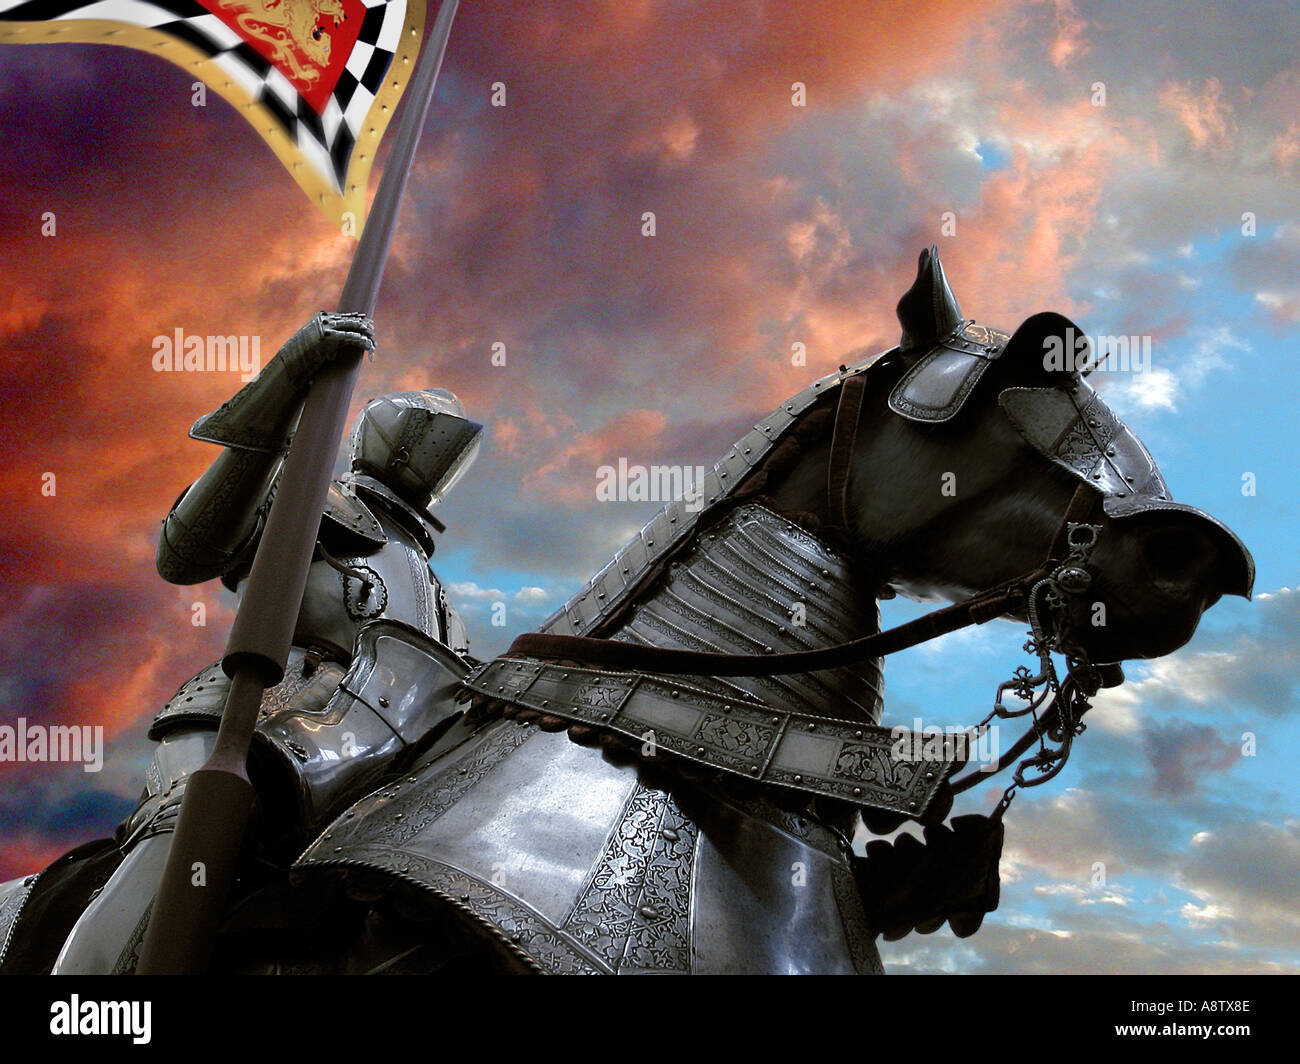 A knight in shining armor on his black armored horse holding a flag possibly preparing to joust - Stock Image